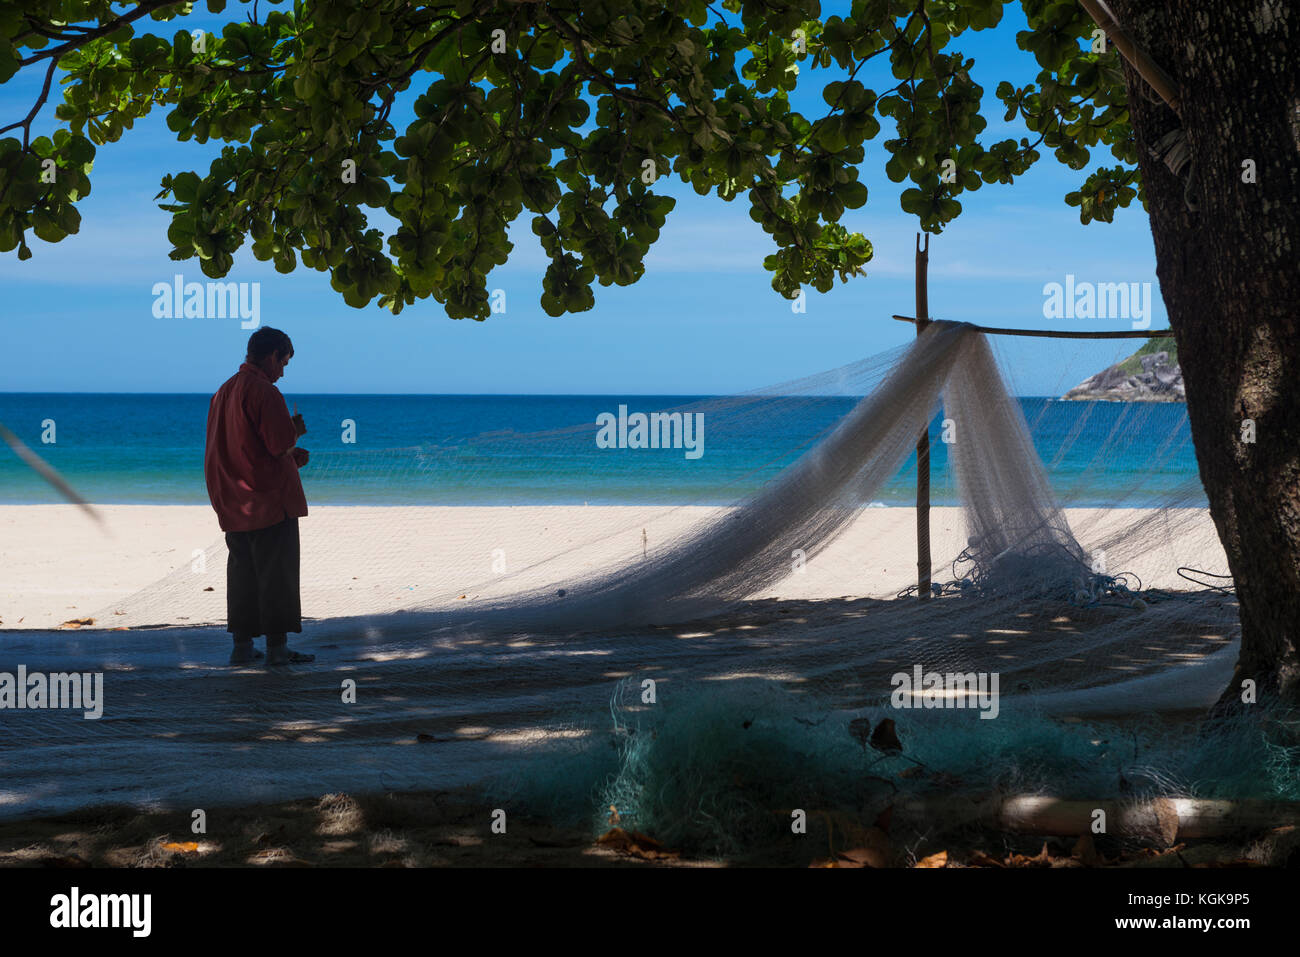 Caiçara fisherman fixing a fishing net at Bonete Beach, Ilhabela, Brazil - Stock Image